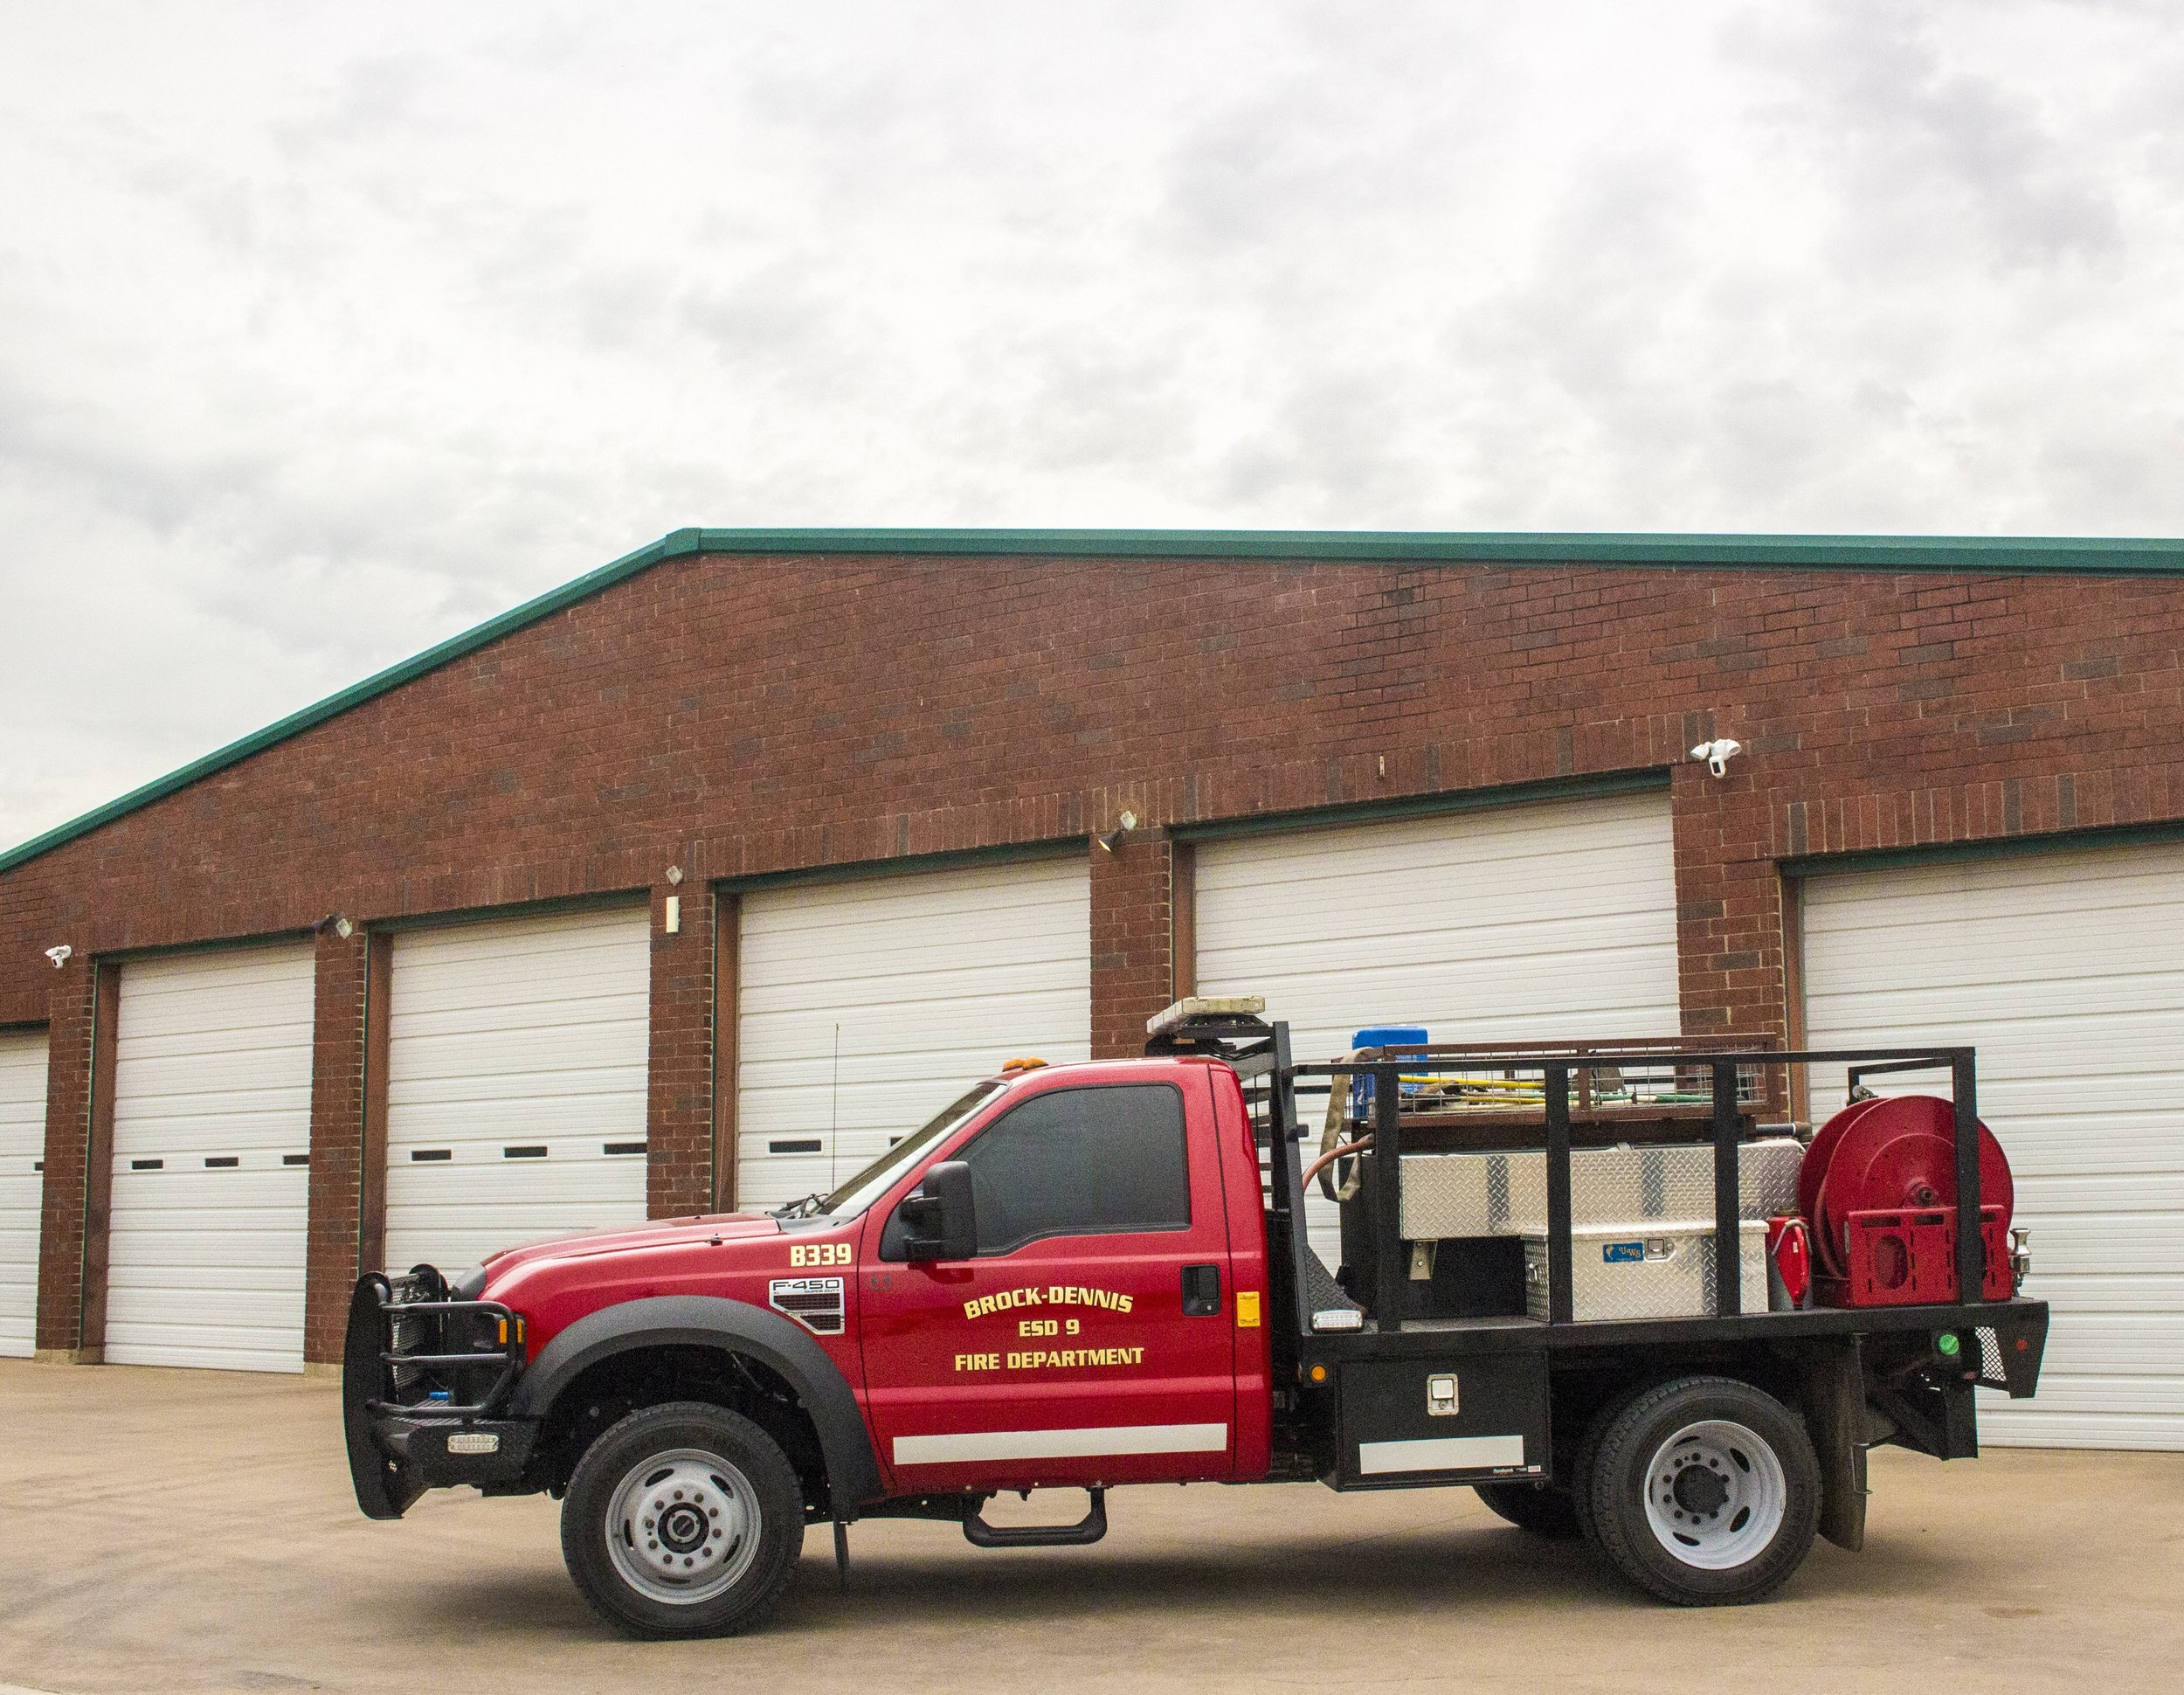 B339 - A 2013 f450 purchased in 2011. It has capacity to carry 300 gallons of water for grass and brush fires. Today it is housed at Station 3 south of the river. It is currently being prepped for a new skid unit to house 400 gallons of water with a higher volume pump.